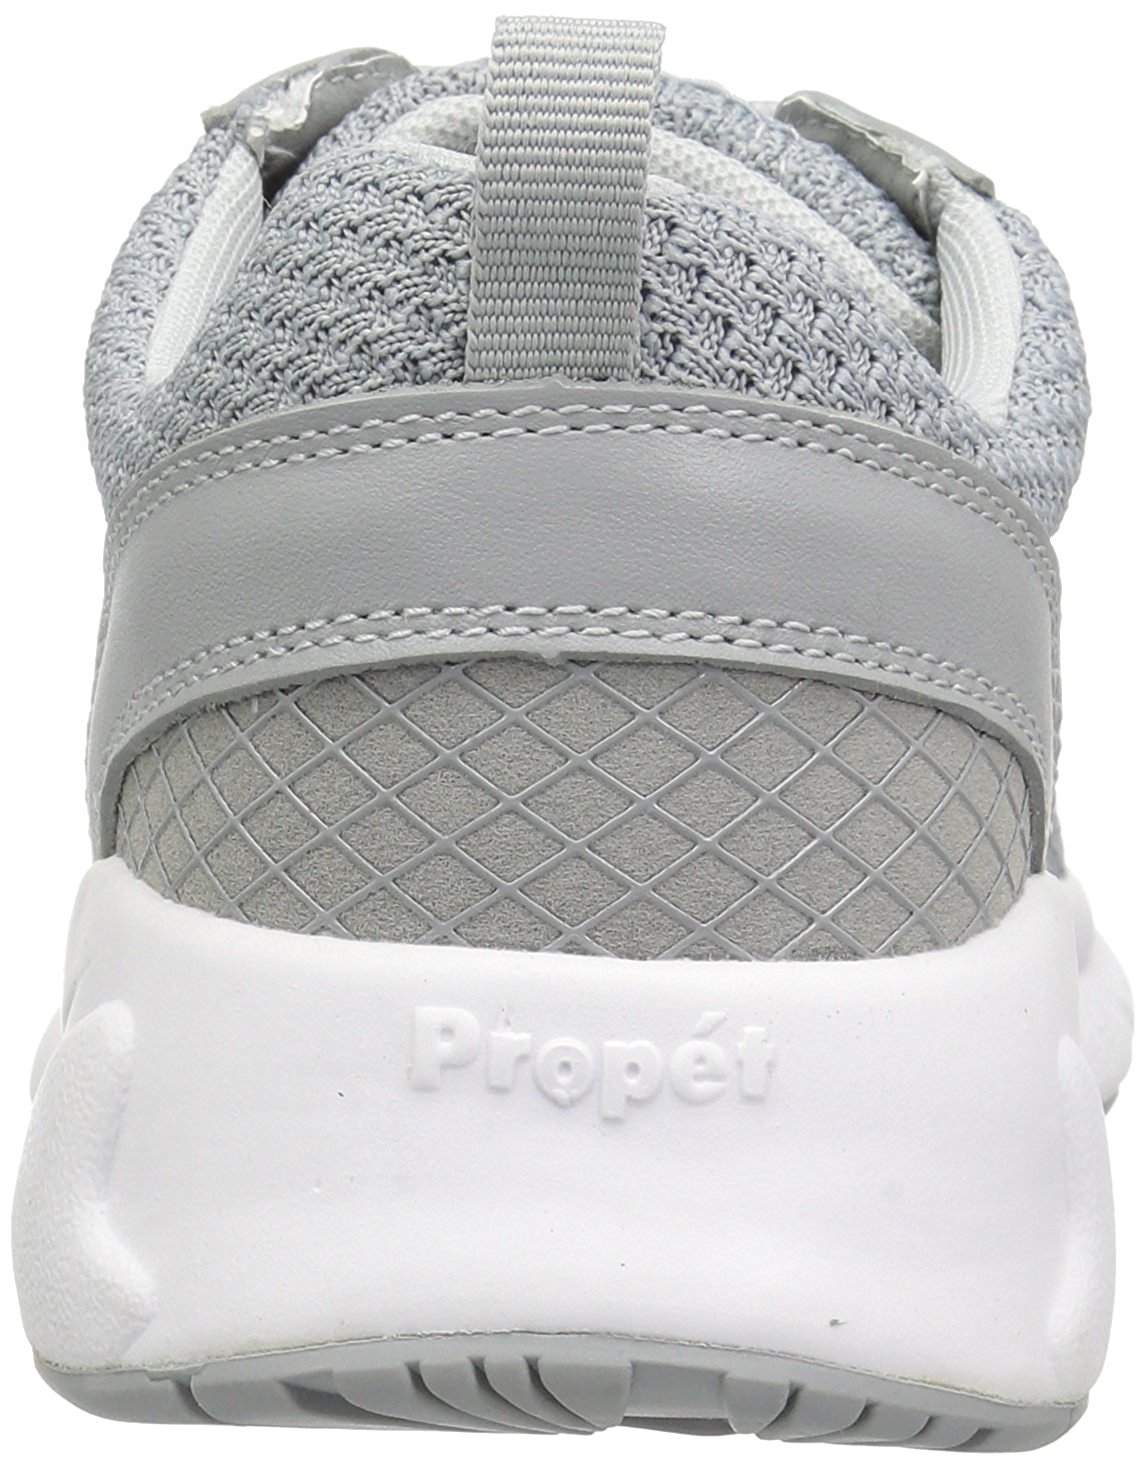 1cc6588f565f Propét Womens stability x Low Top Lace Up Running Sneaker